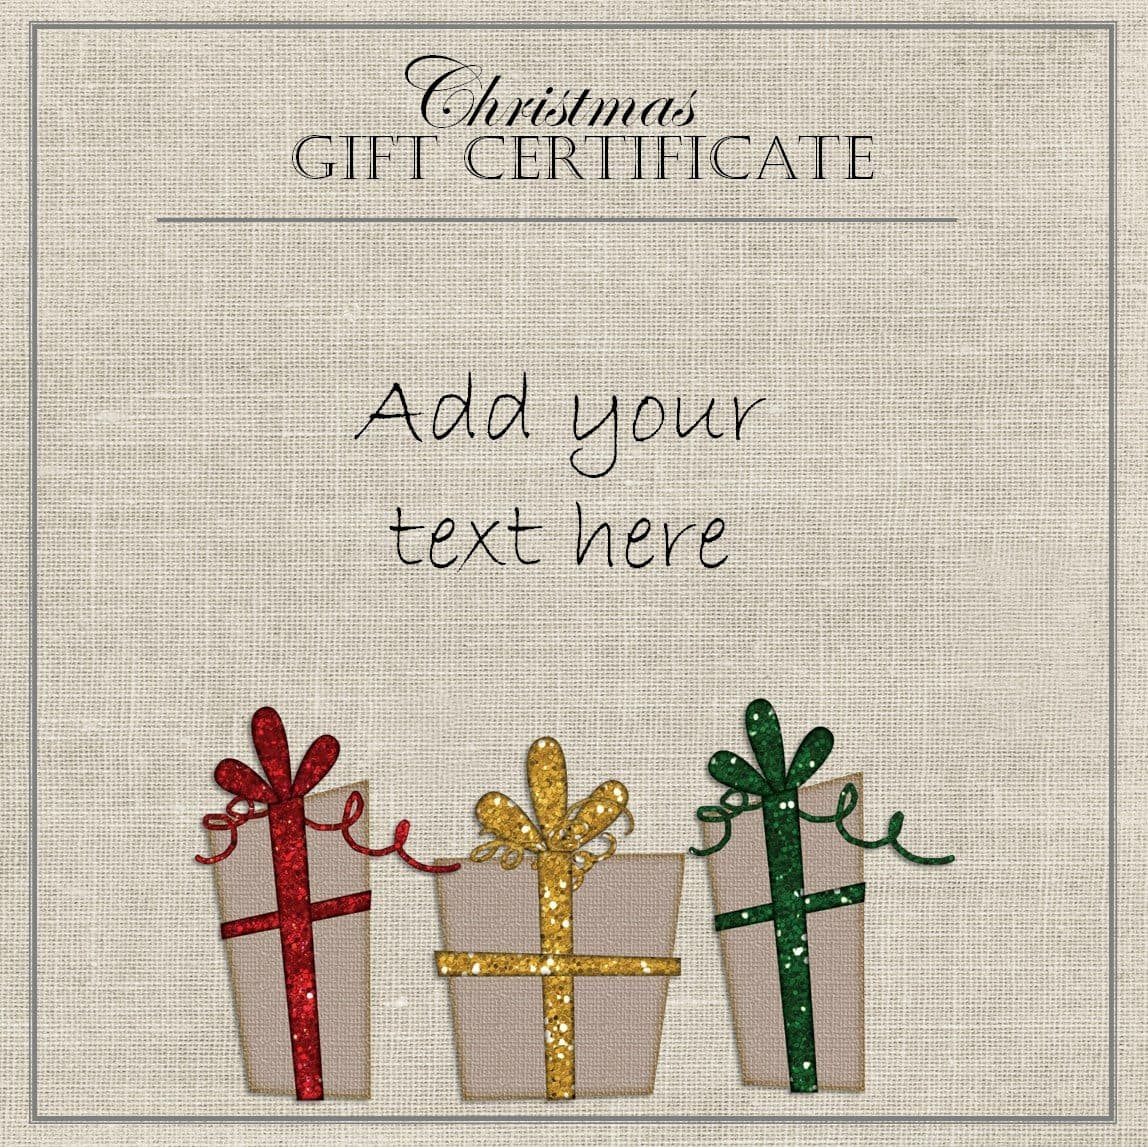 Free christmas gift certificate template customize online download elegant gift certificate template with three gifts with red yellow and green ribbons yelopaper Image collections